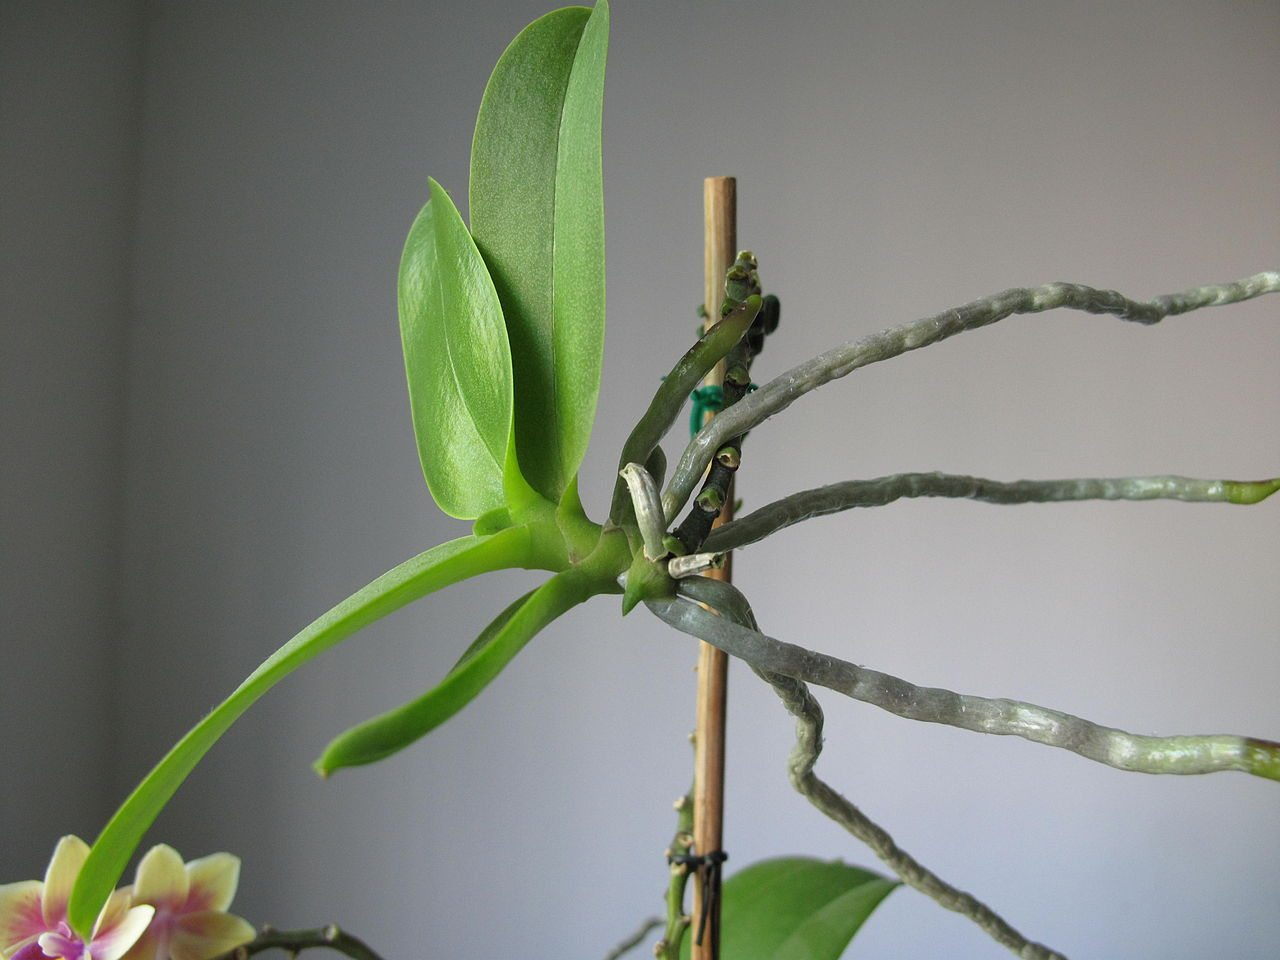 Orchid keikis orchid propagation from keikis How do you care for orchids after they bloom